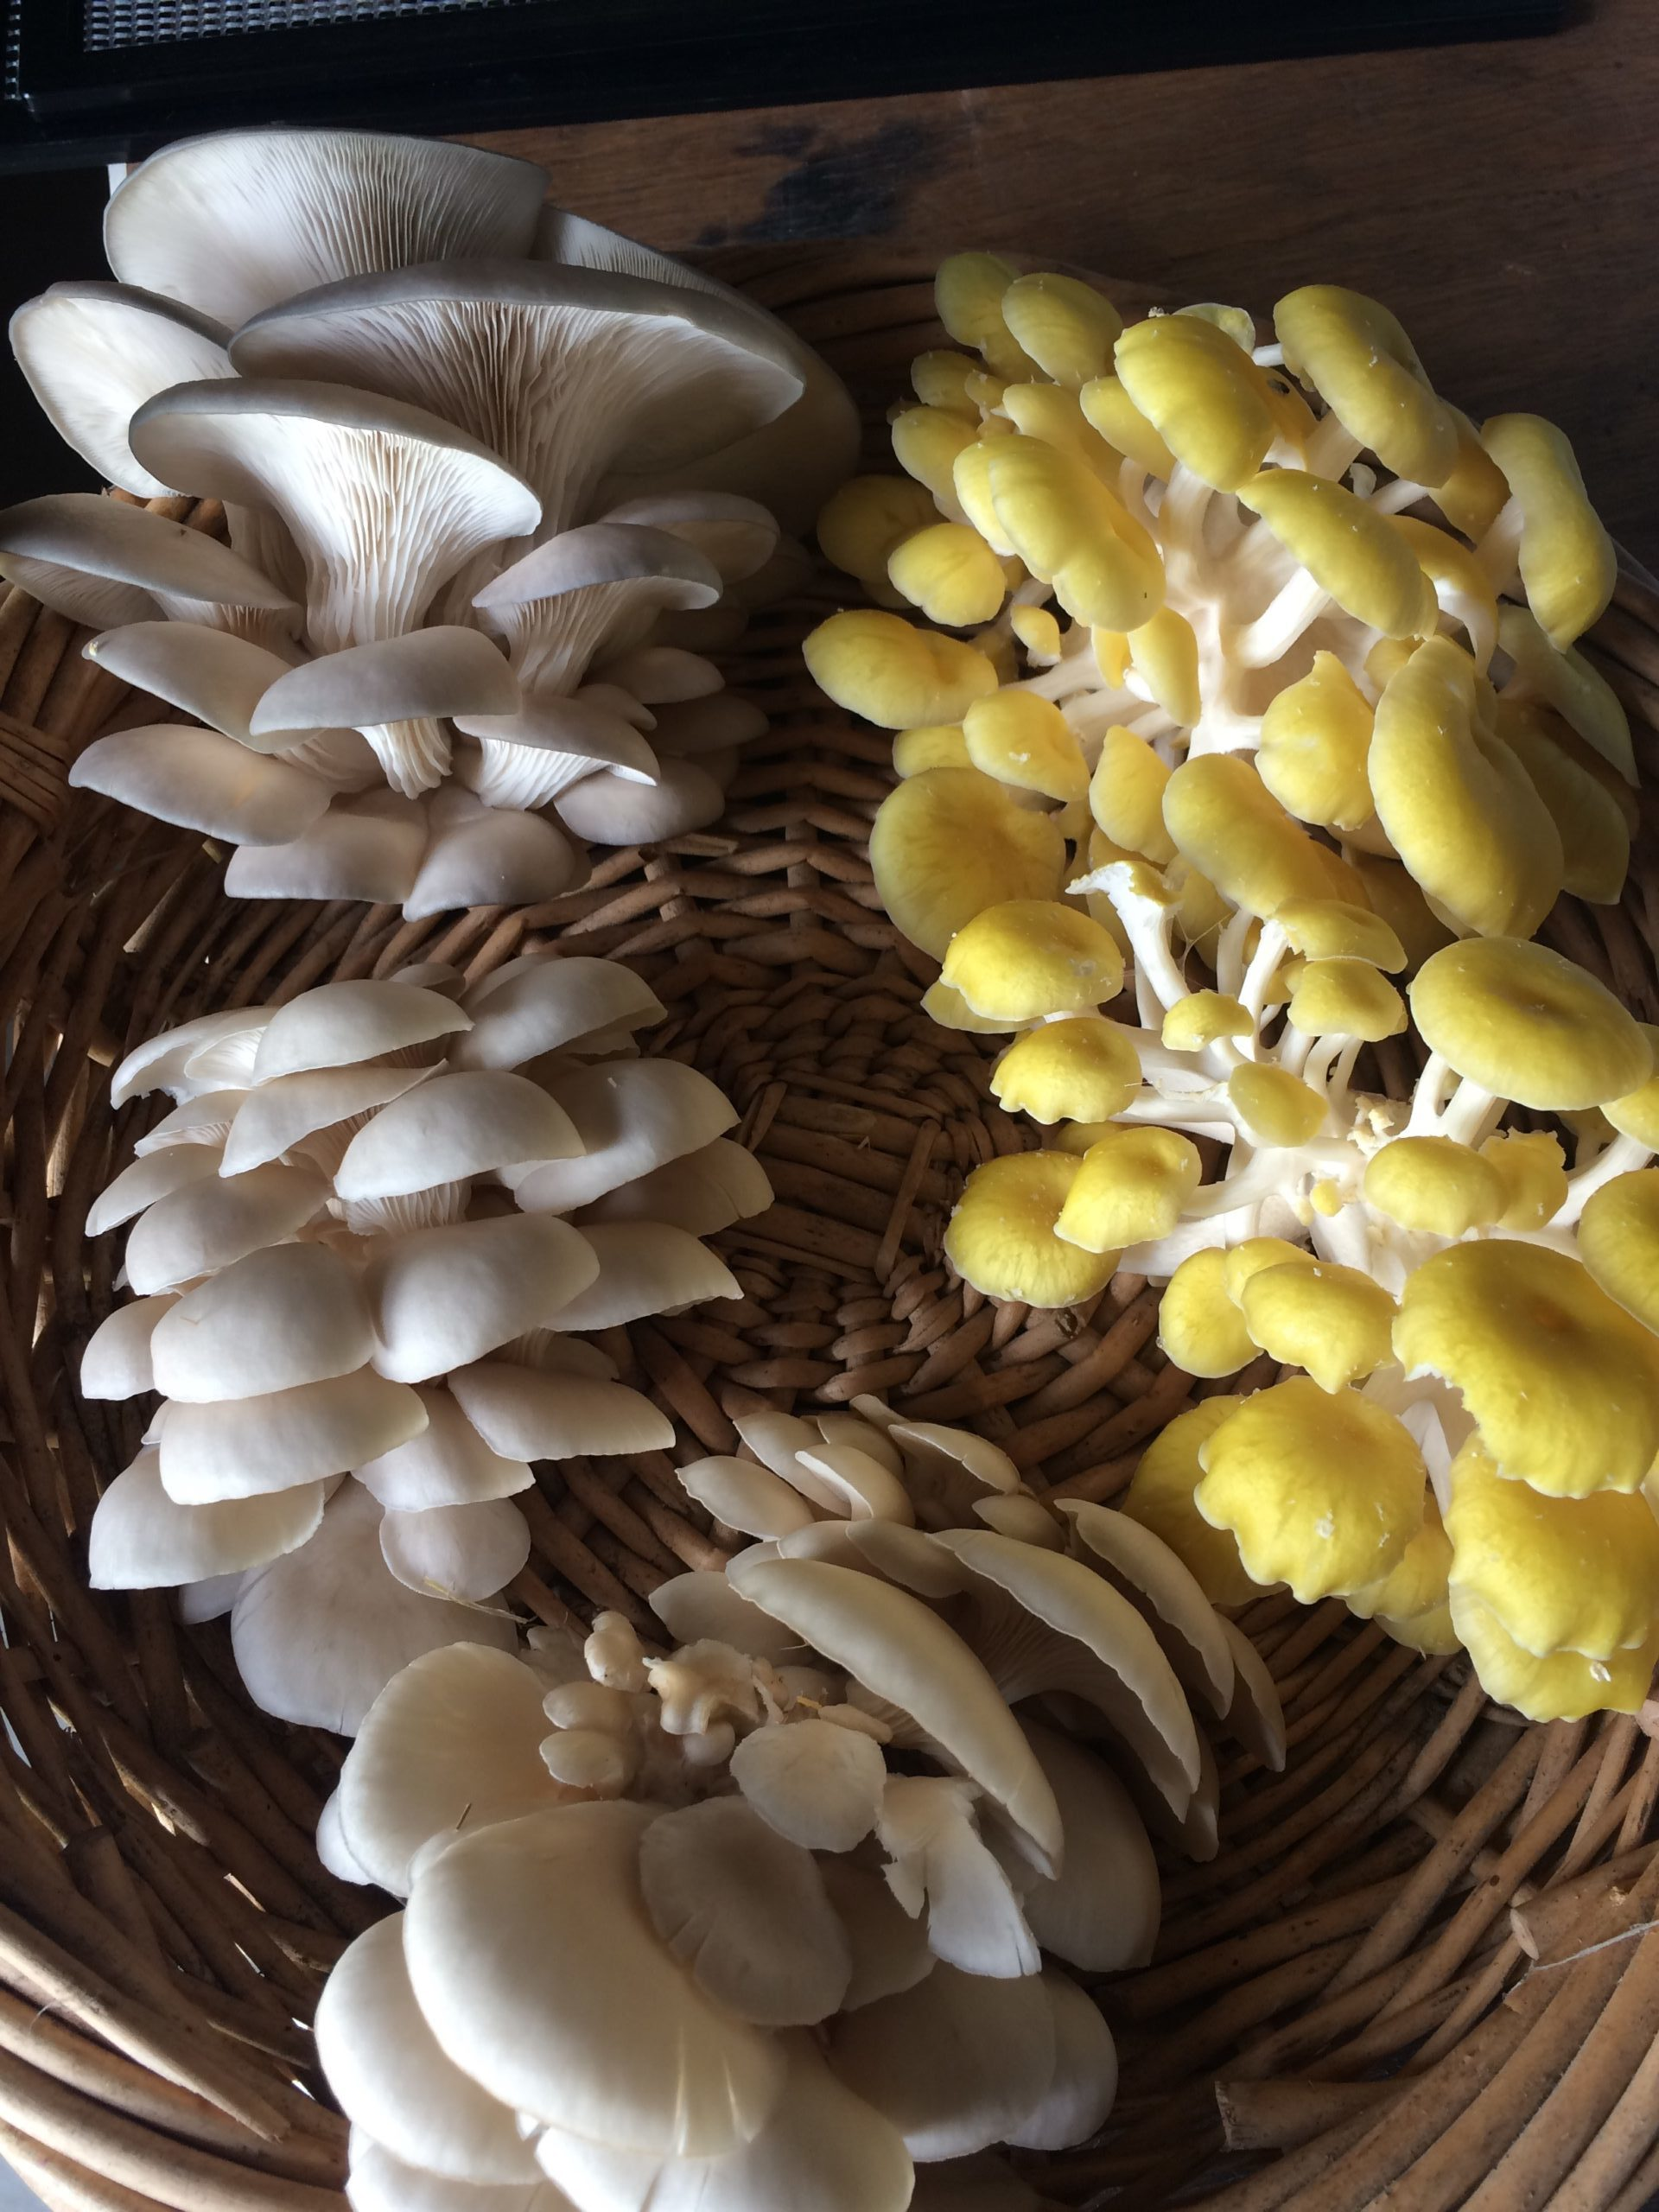 Oyster mushrooms should be harvested when they are still supple and with a small curled edge.